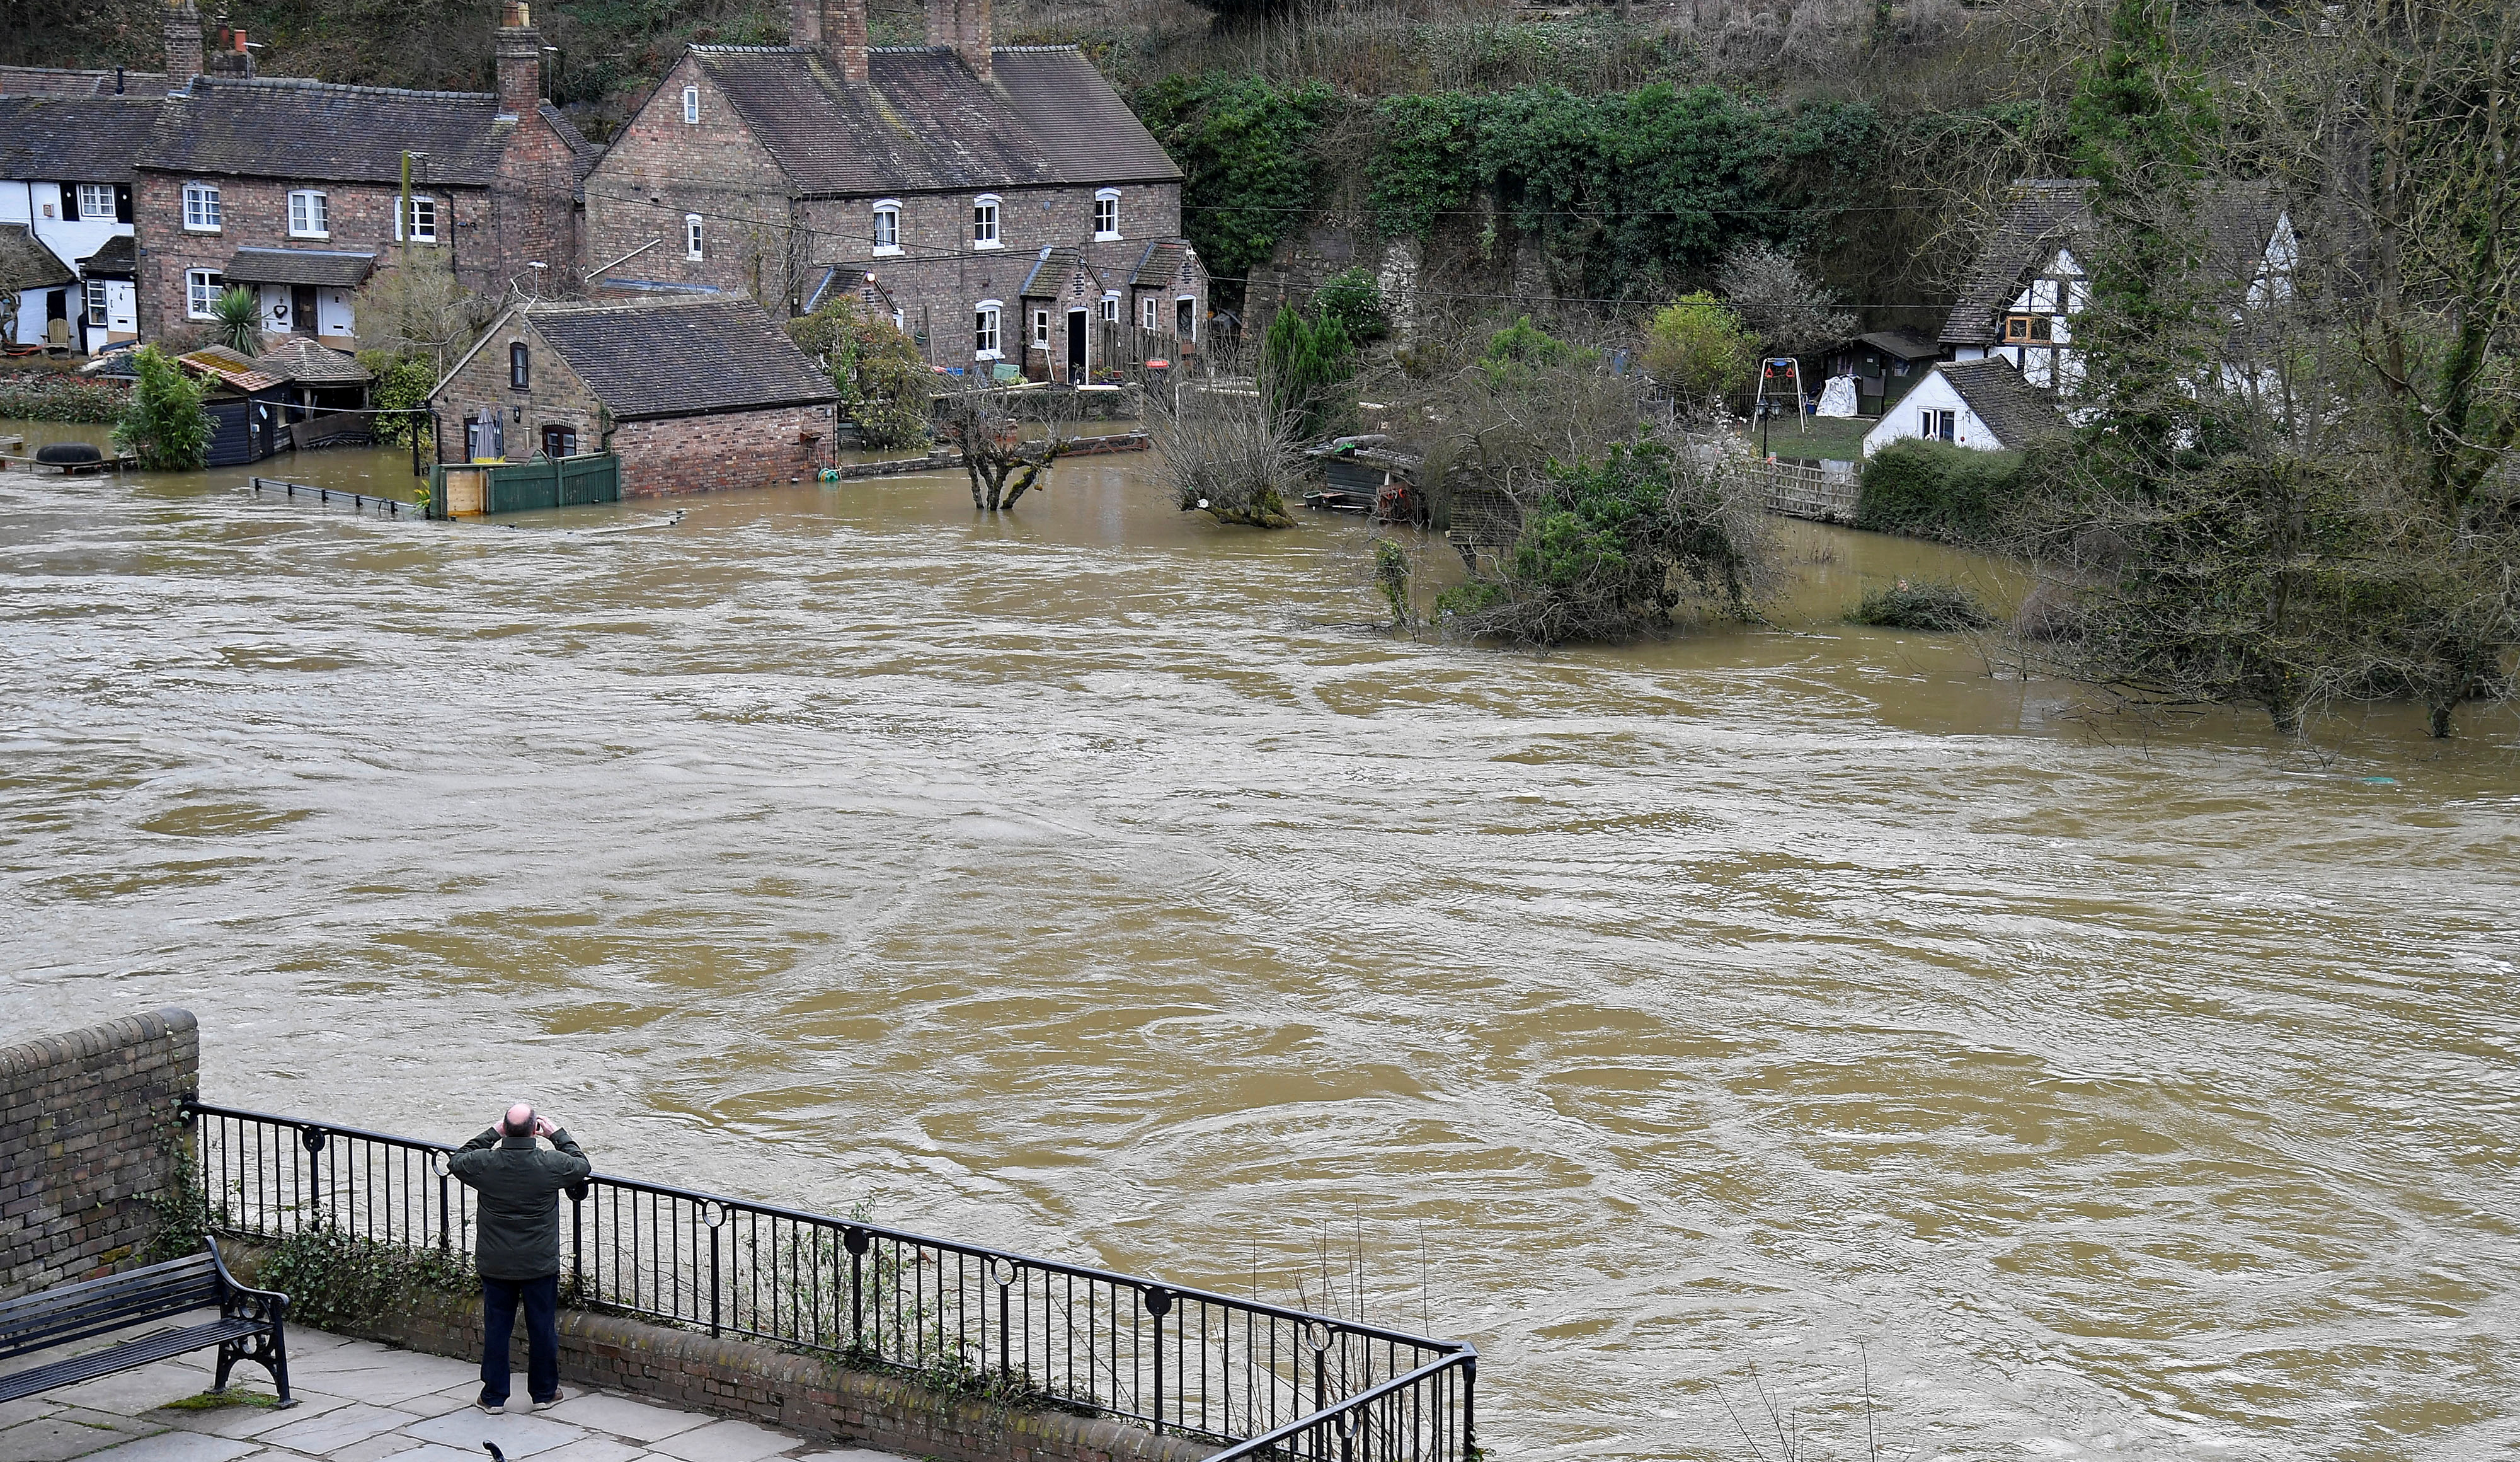 A man views flooded properties beside the River Severn in Ironbridge, Britain, February 27, 2020. REUTERS/Toby Melville